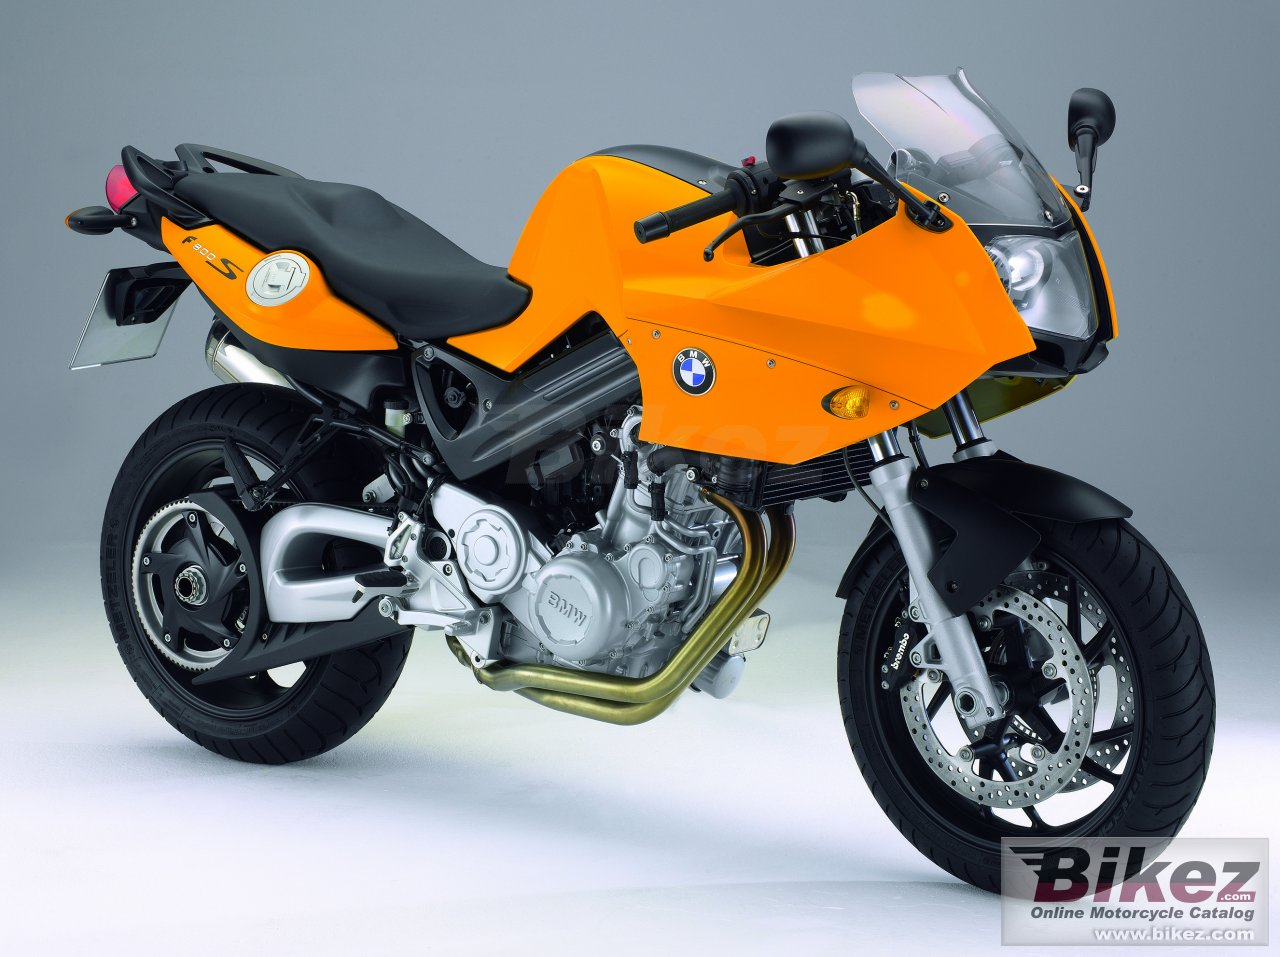 Big BMW f 800 s picture and wallpaper from Bikez.com